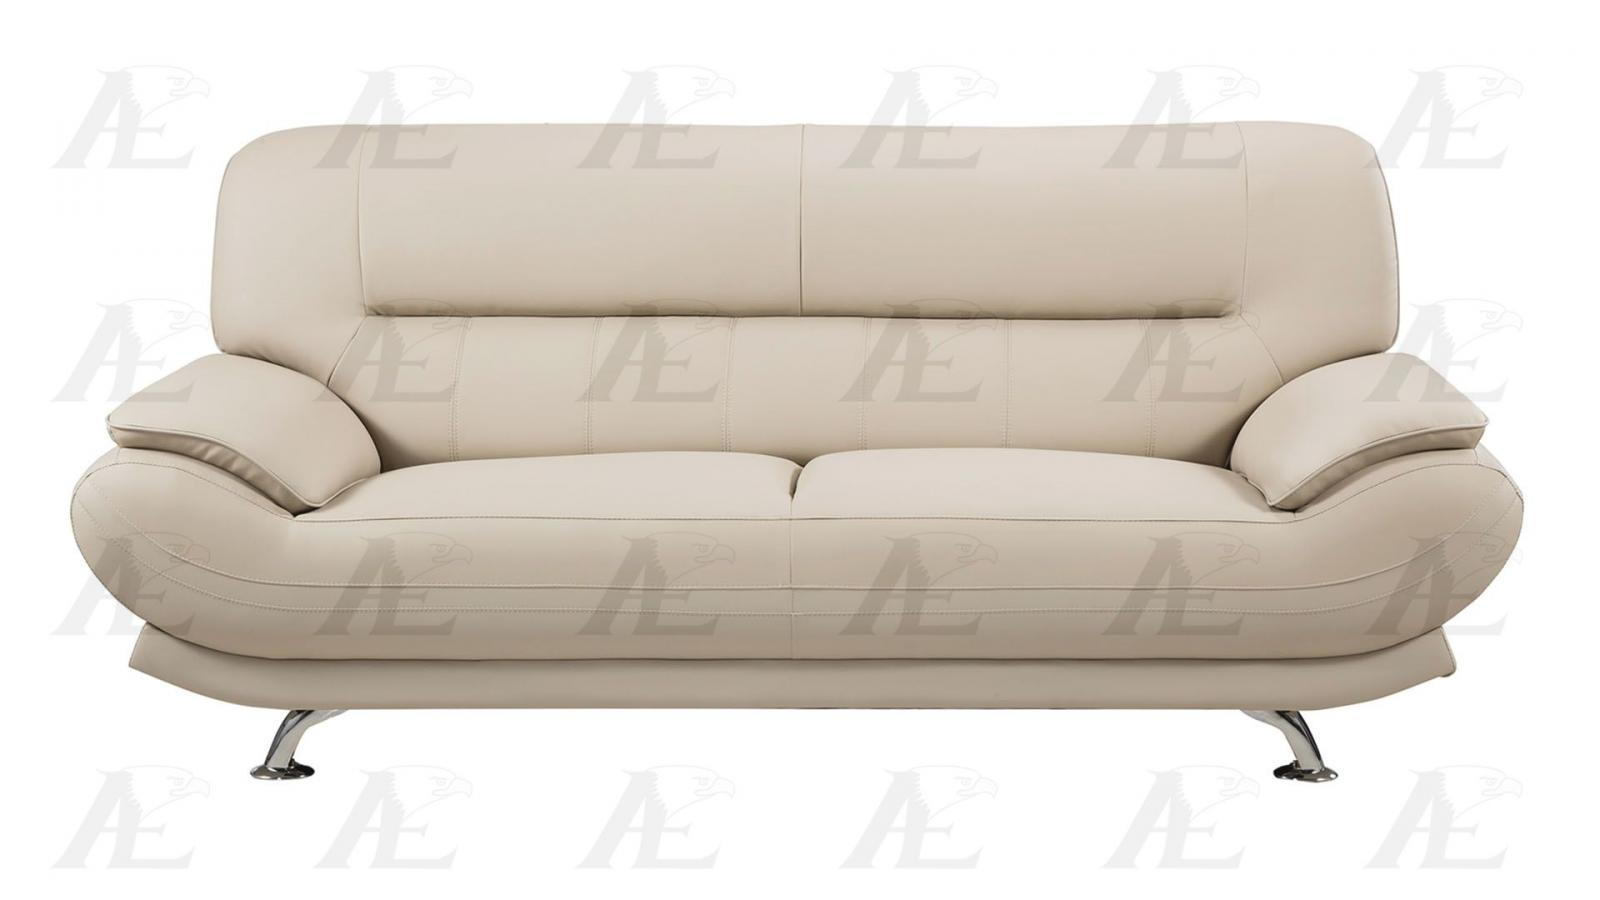 American Eagle Ae709 Crm Cream Sofa And Loveseat Faux Leather Set 2pcs Sofas Loveseats Chaises